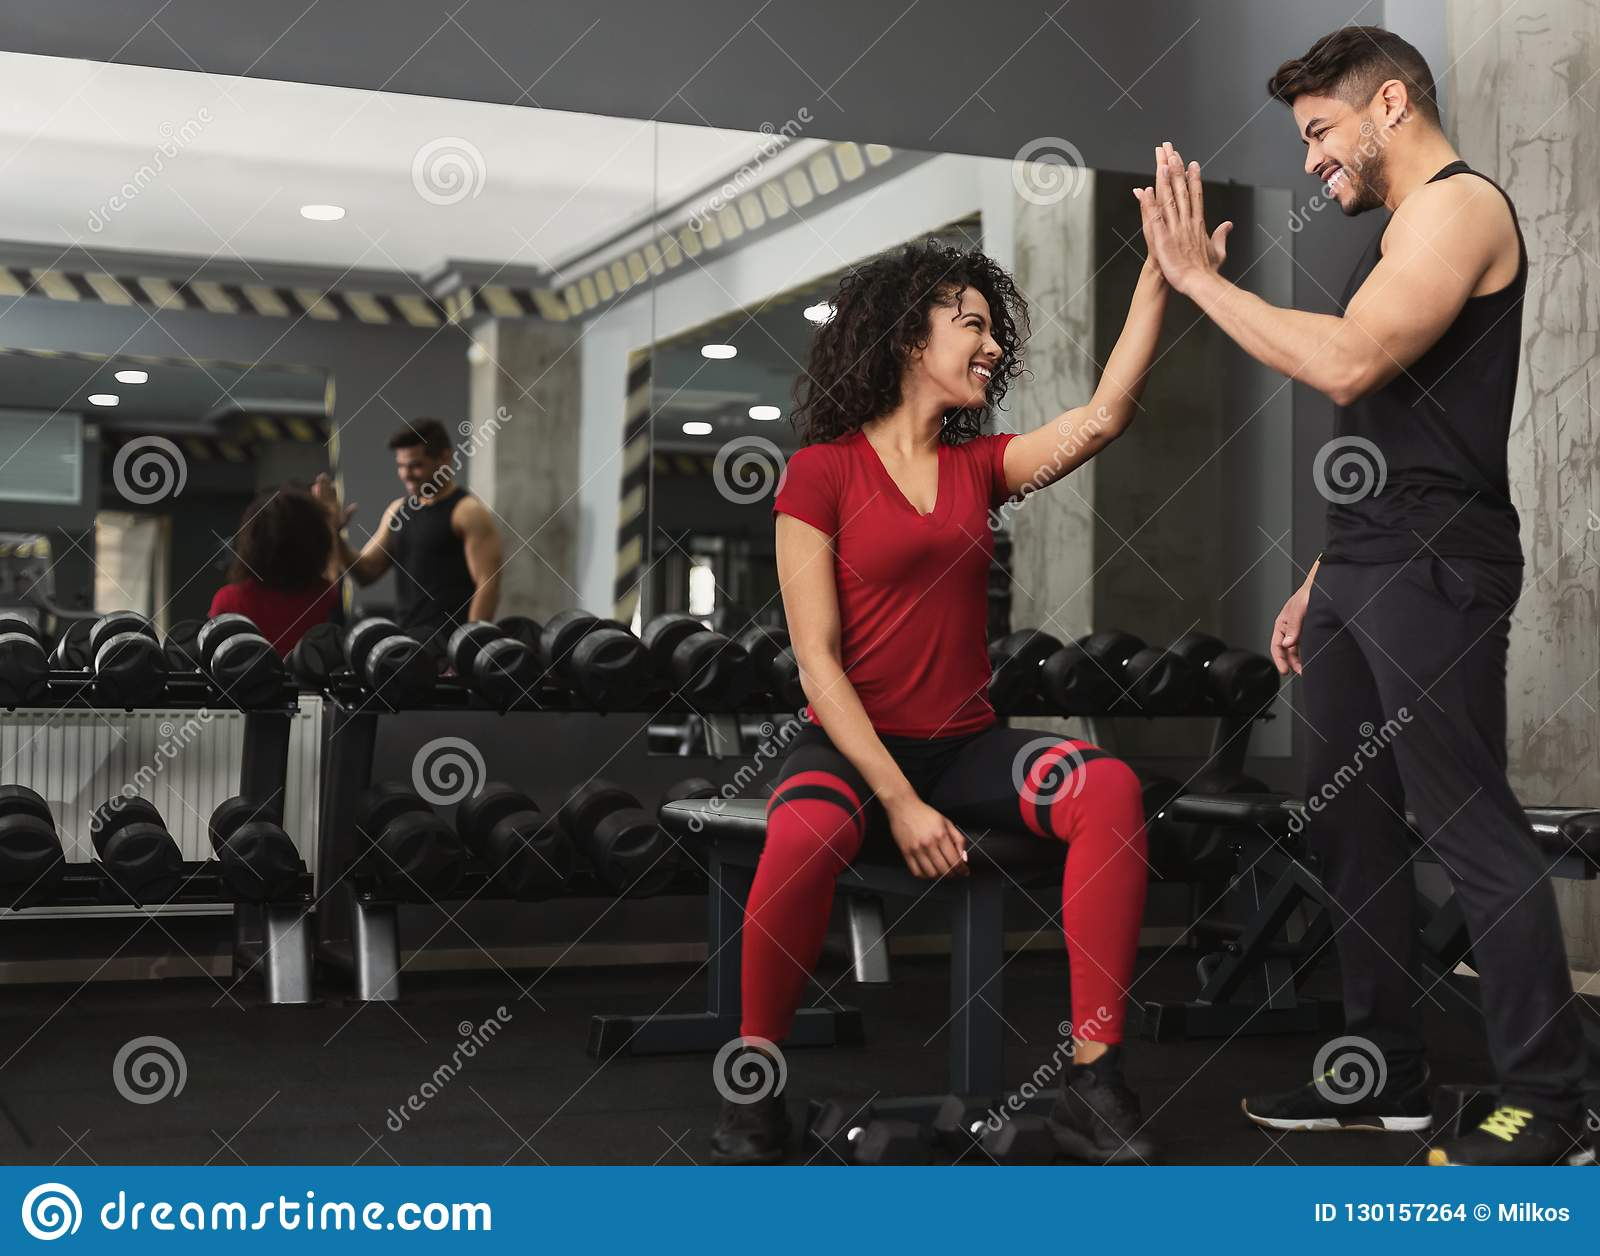 Fitness trainer and woman giving each other high five